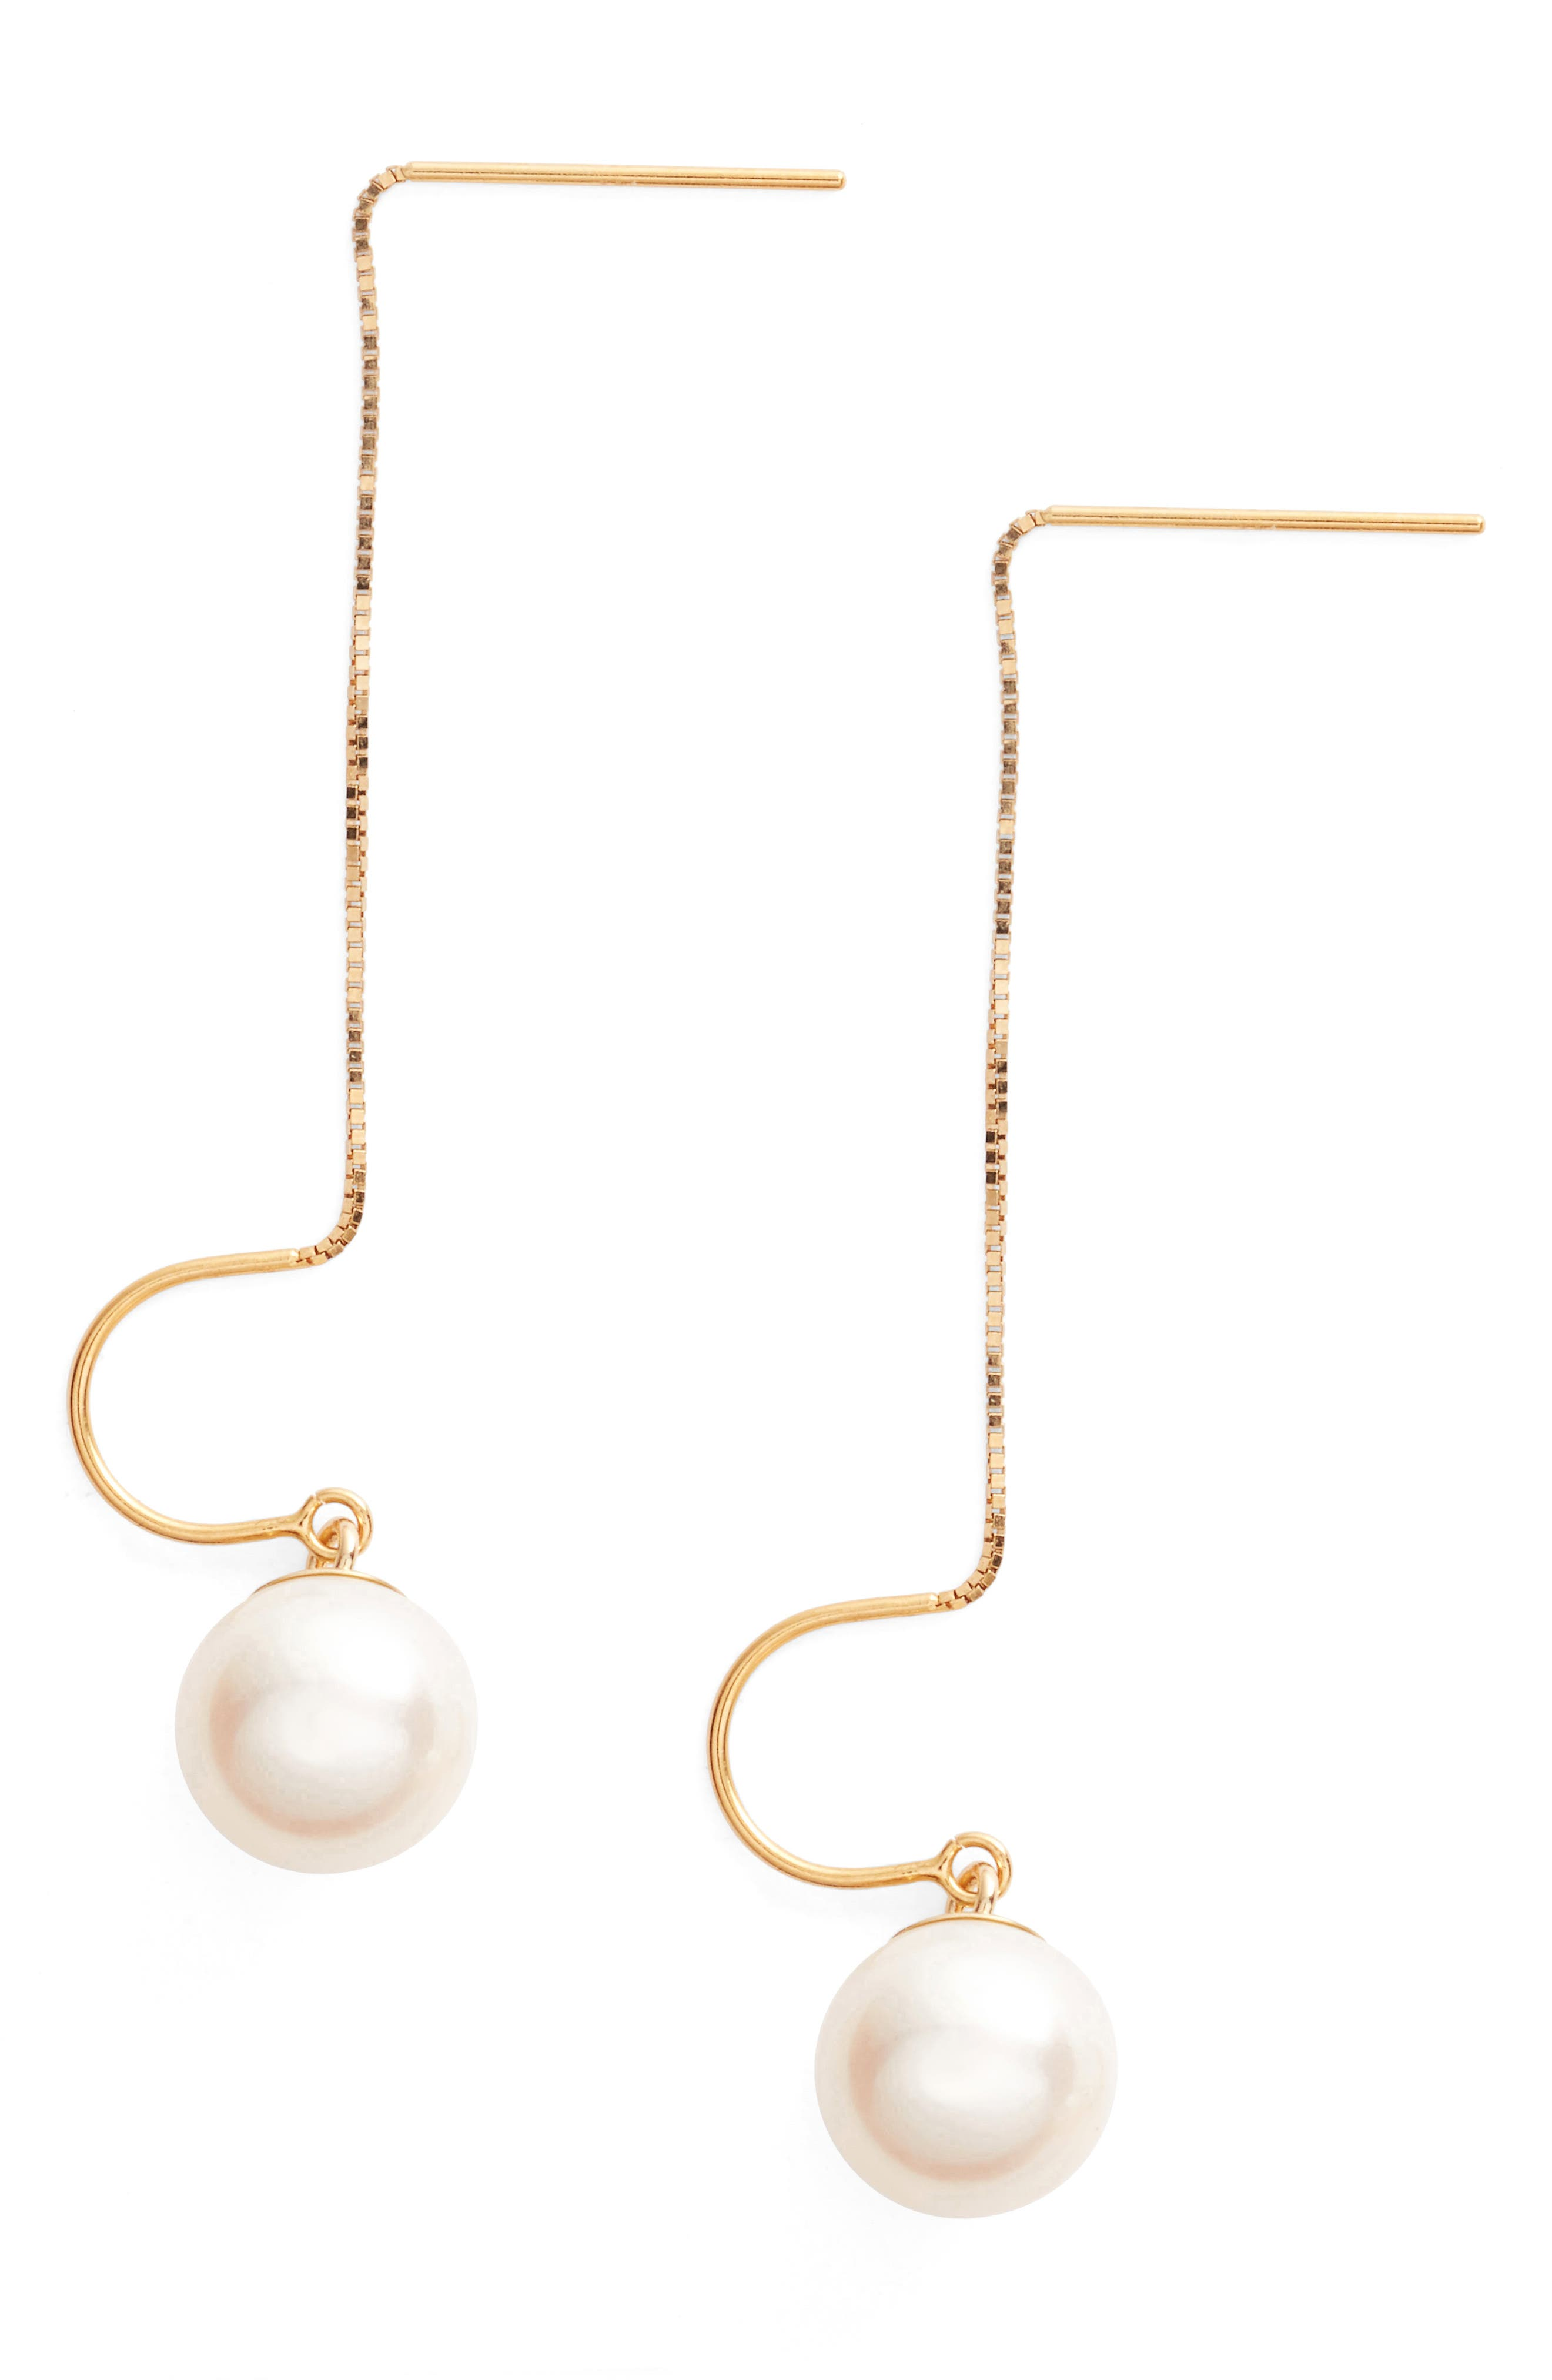 Pearl Threader Earrings,                             Main thumbnail 1, color,                             YELLOW GOLD/ WHITE PEARL